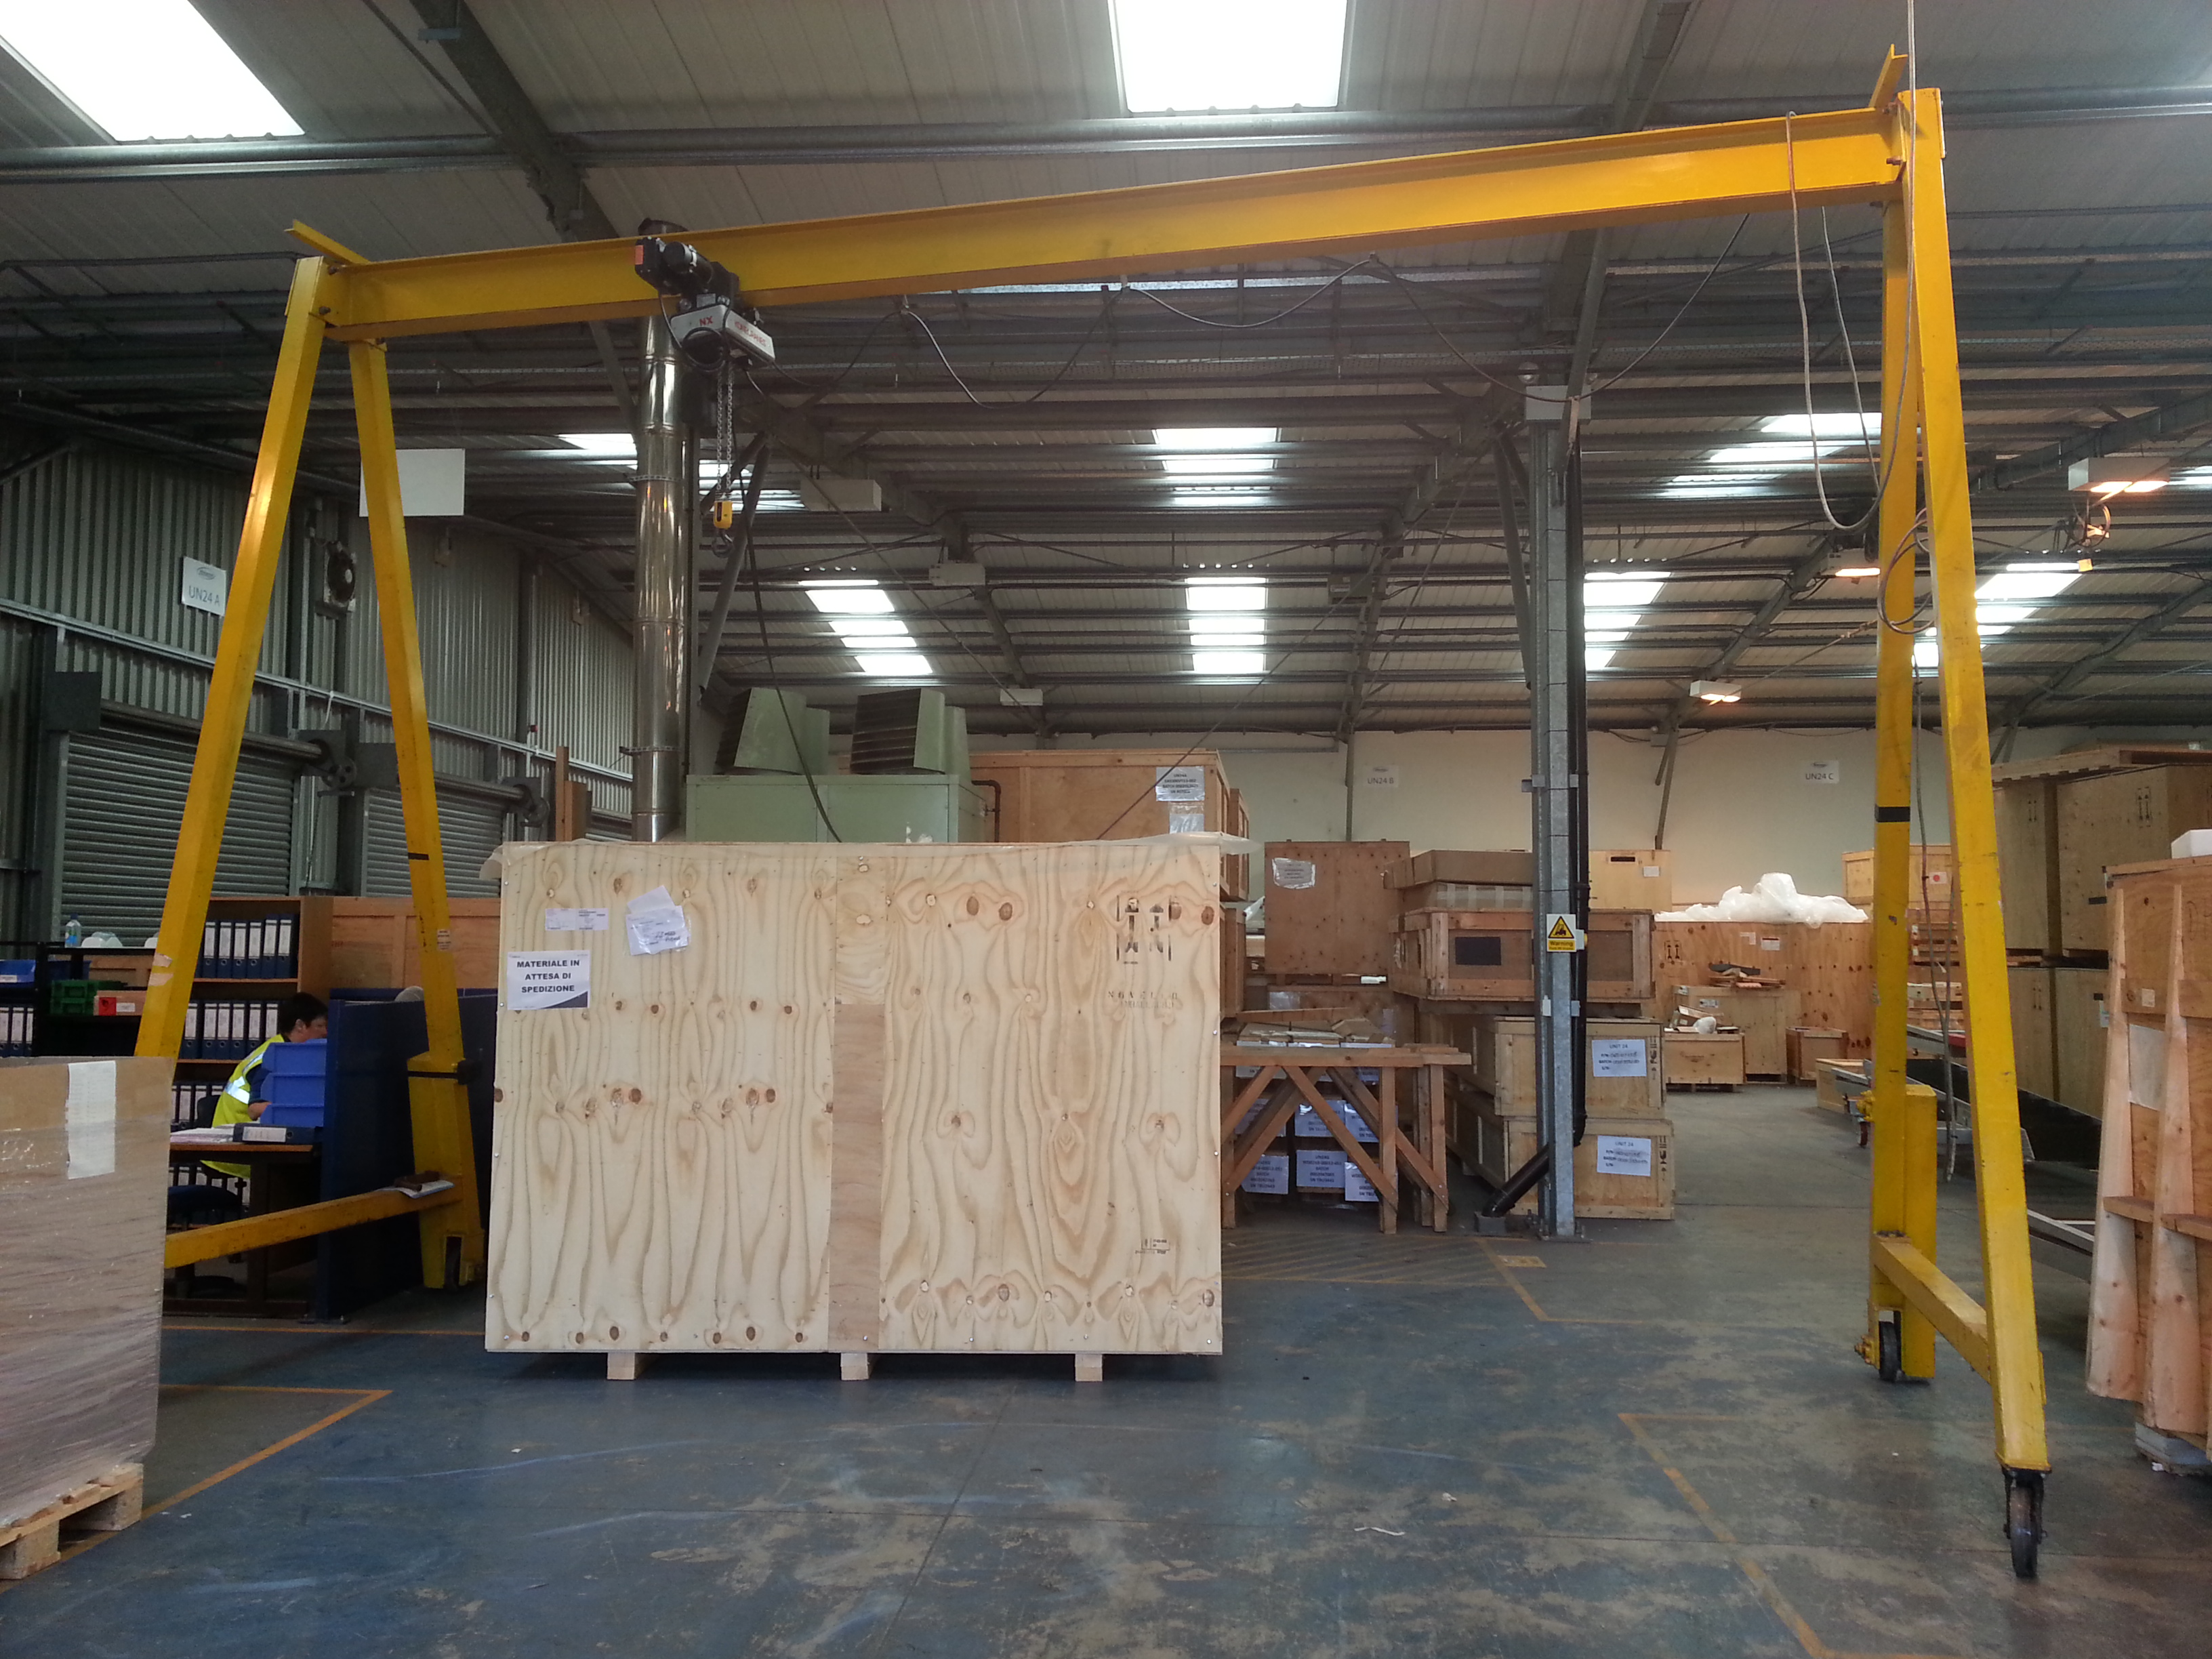 used 1 tonne a frame portable gantry system for sale